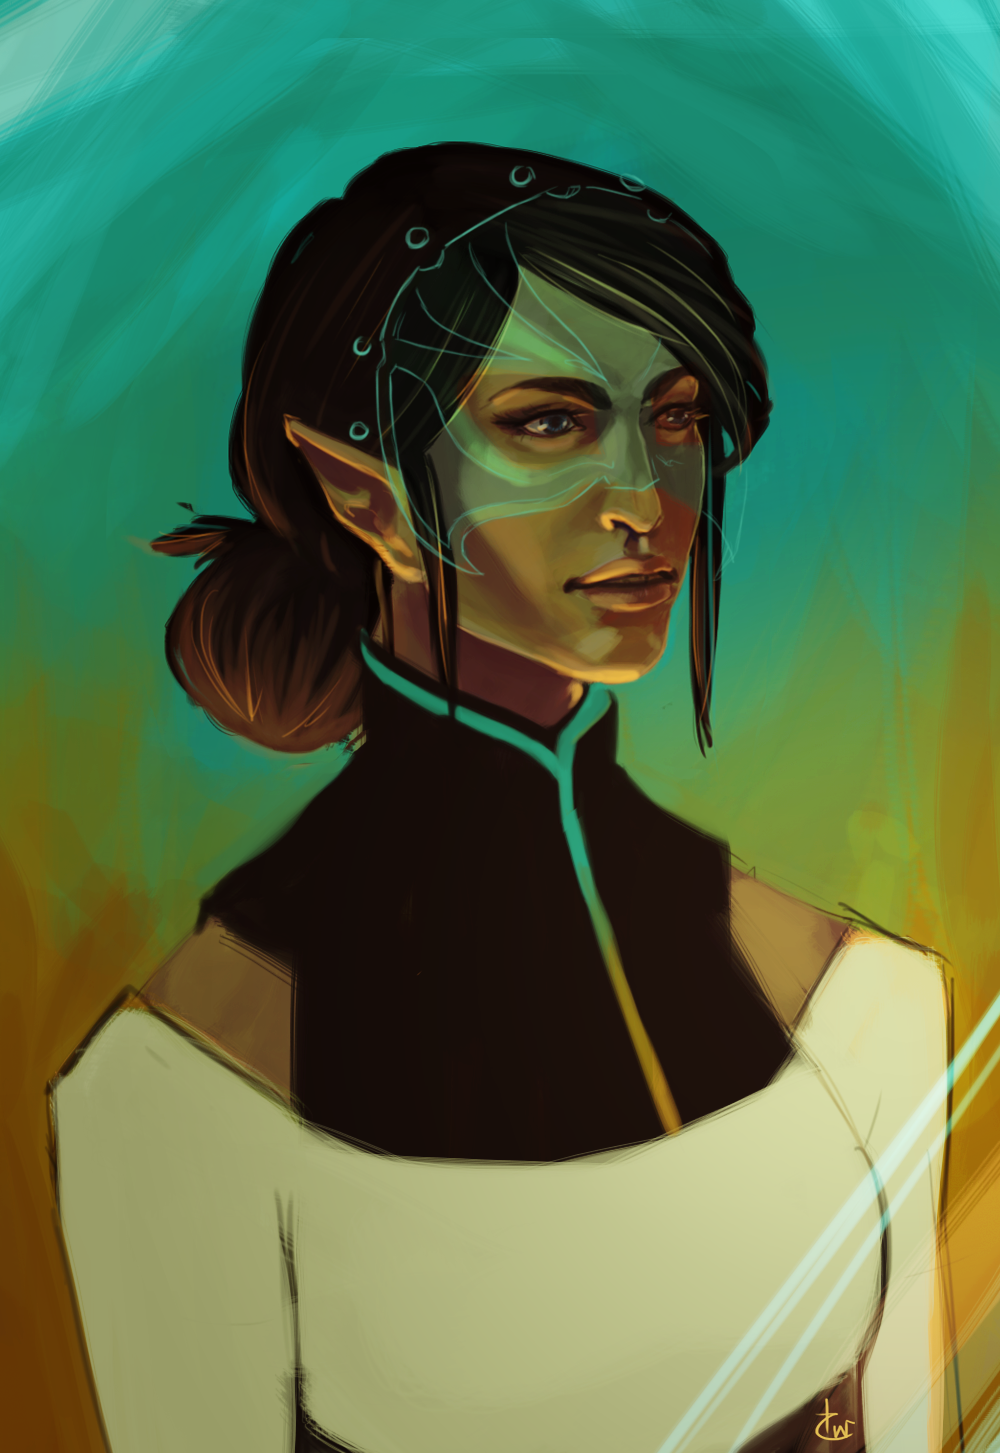 hemiart :   Briala is hands down one of my favorite characters in Dragon Age. If you haven't had a chance to read The Masked Empire, pick it up! I think it made Halamshiral/Wicked Eyes and Wicked Hearts all the more fun and interesting to play through. I used her tarot card for reference since she had a mask on during Inquisition.